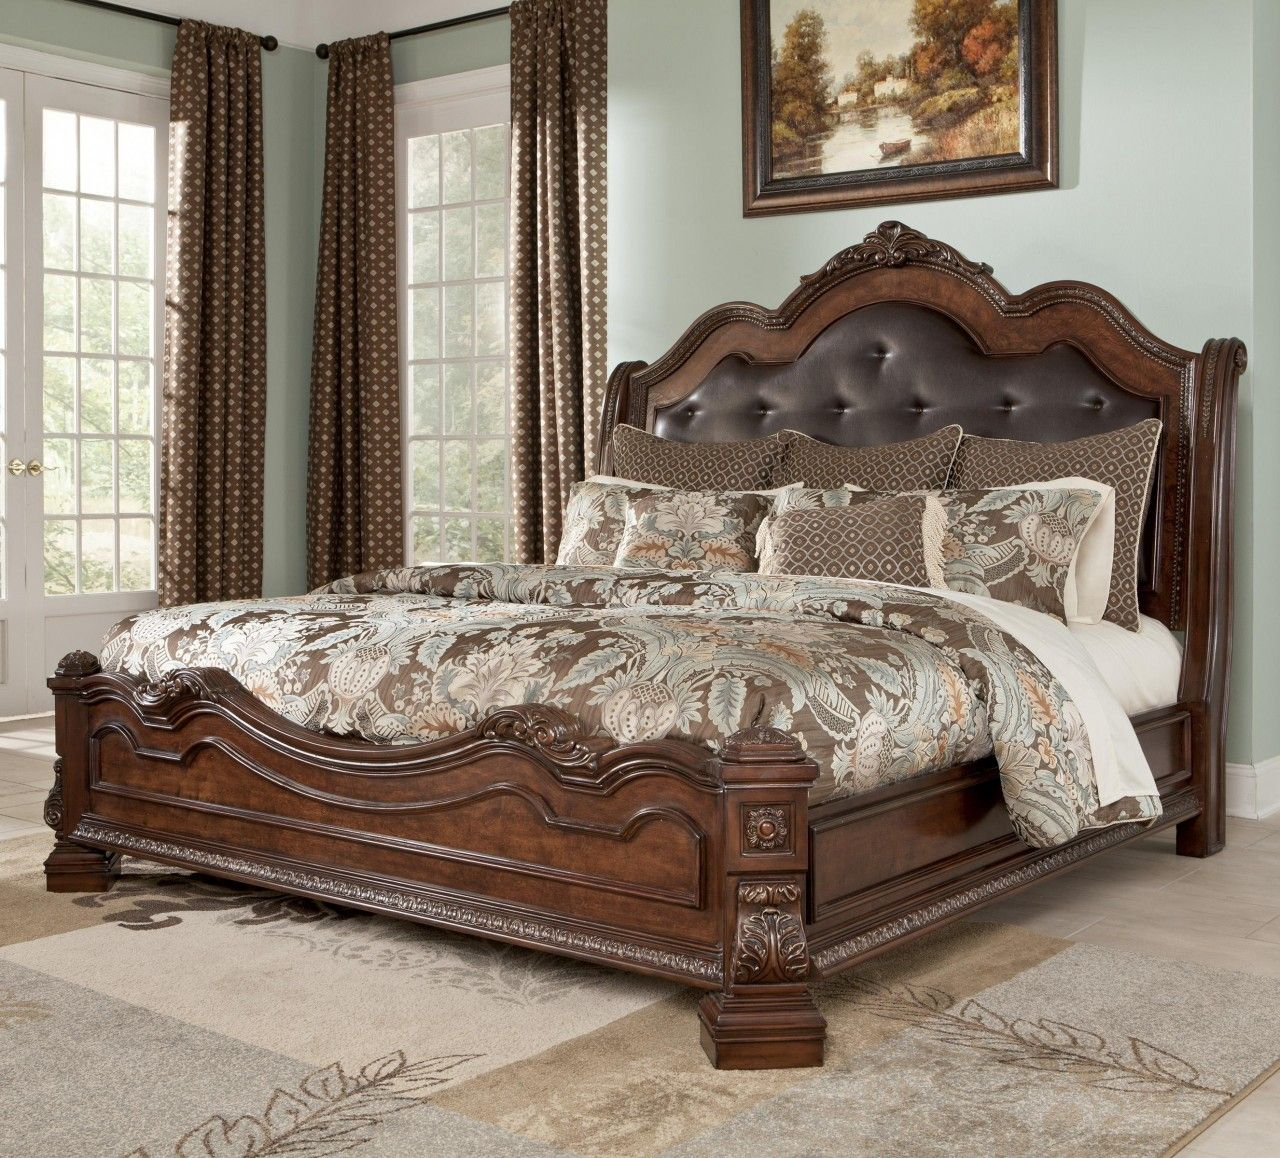 king size bed frame with headboard httpbedroomdecorbacktobosniacom